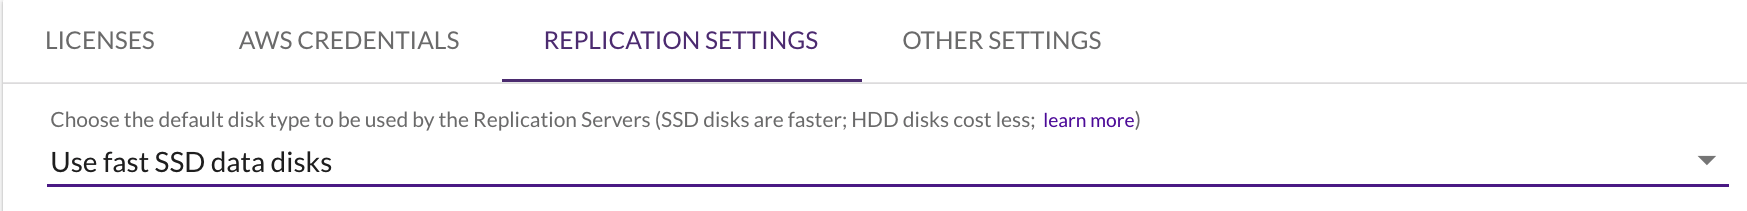 Within the project replication settings, the console notes the default as Use fast SSD data disks.